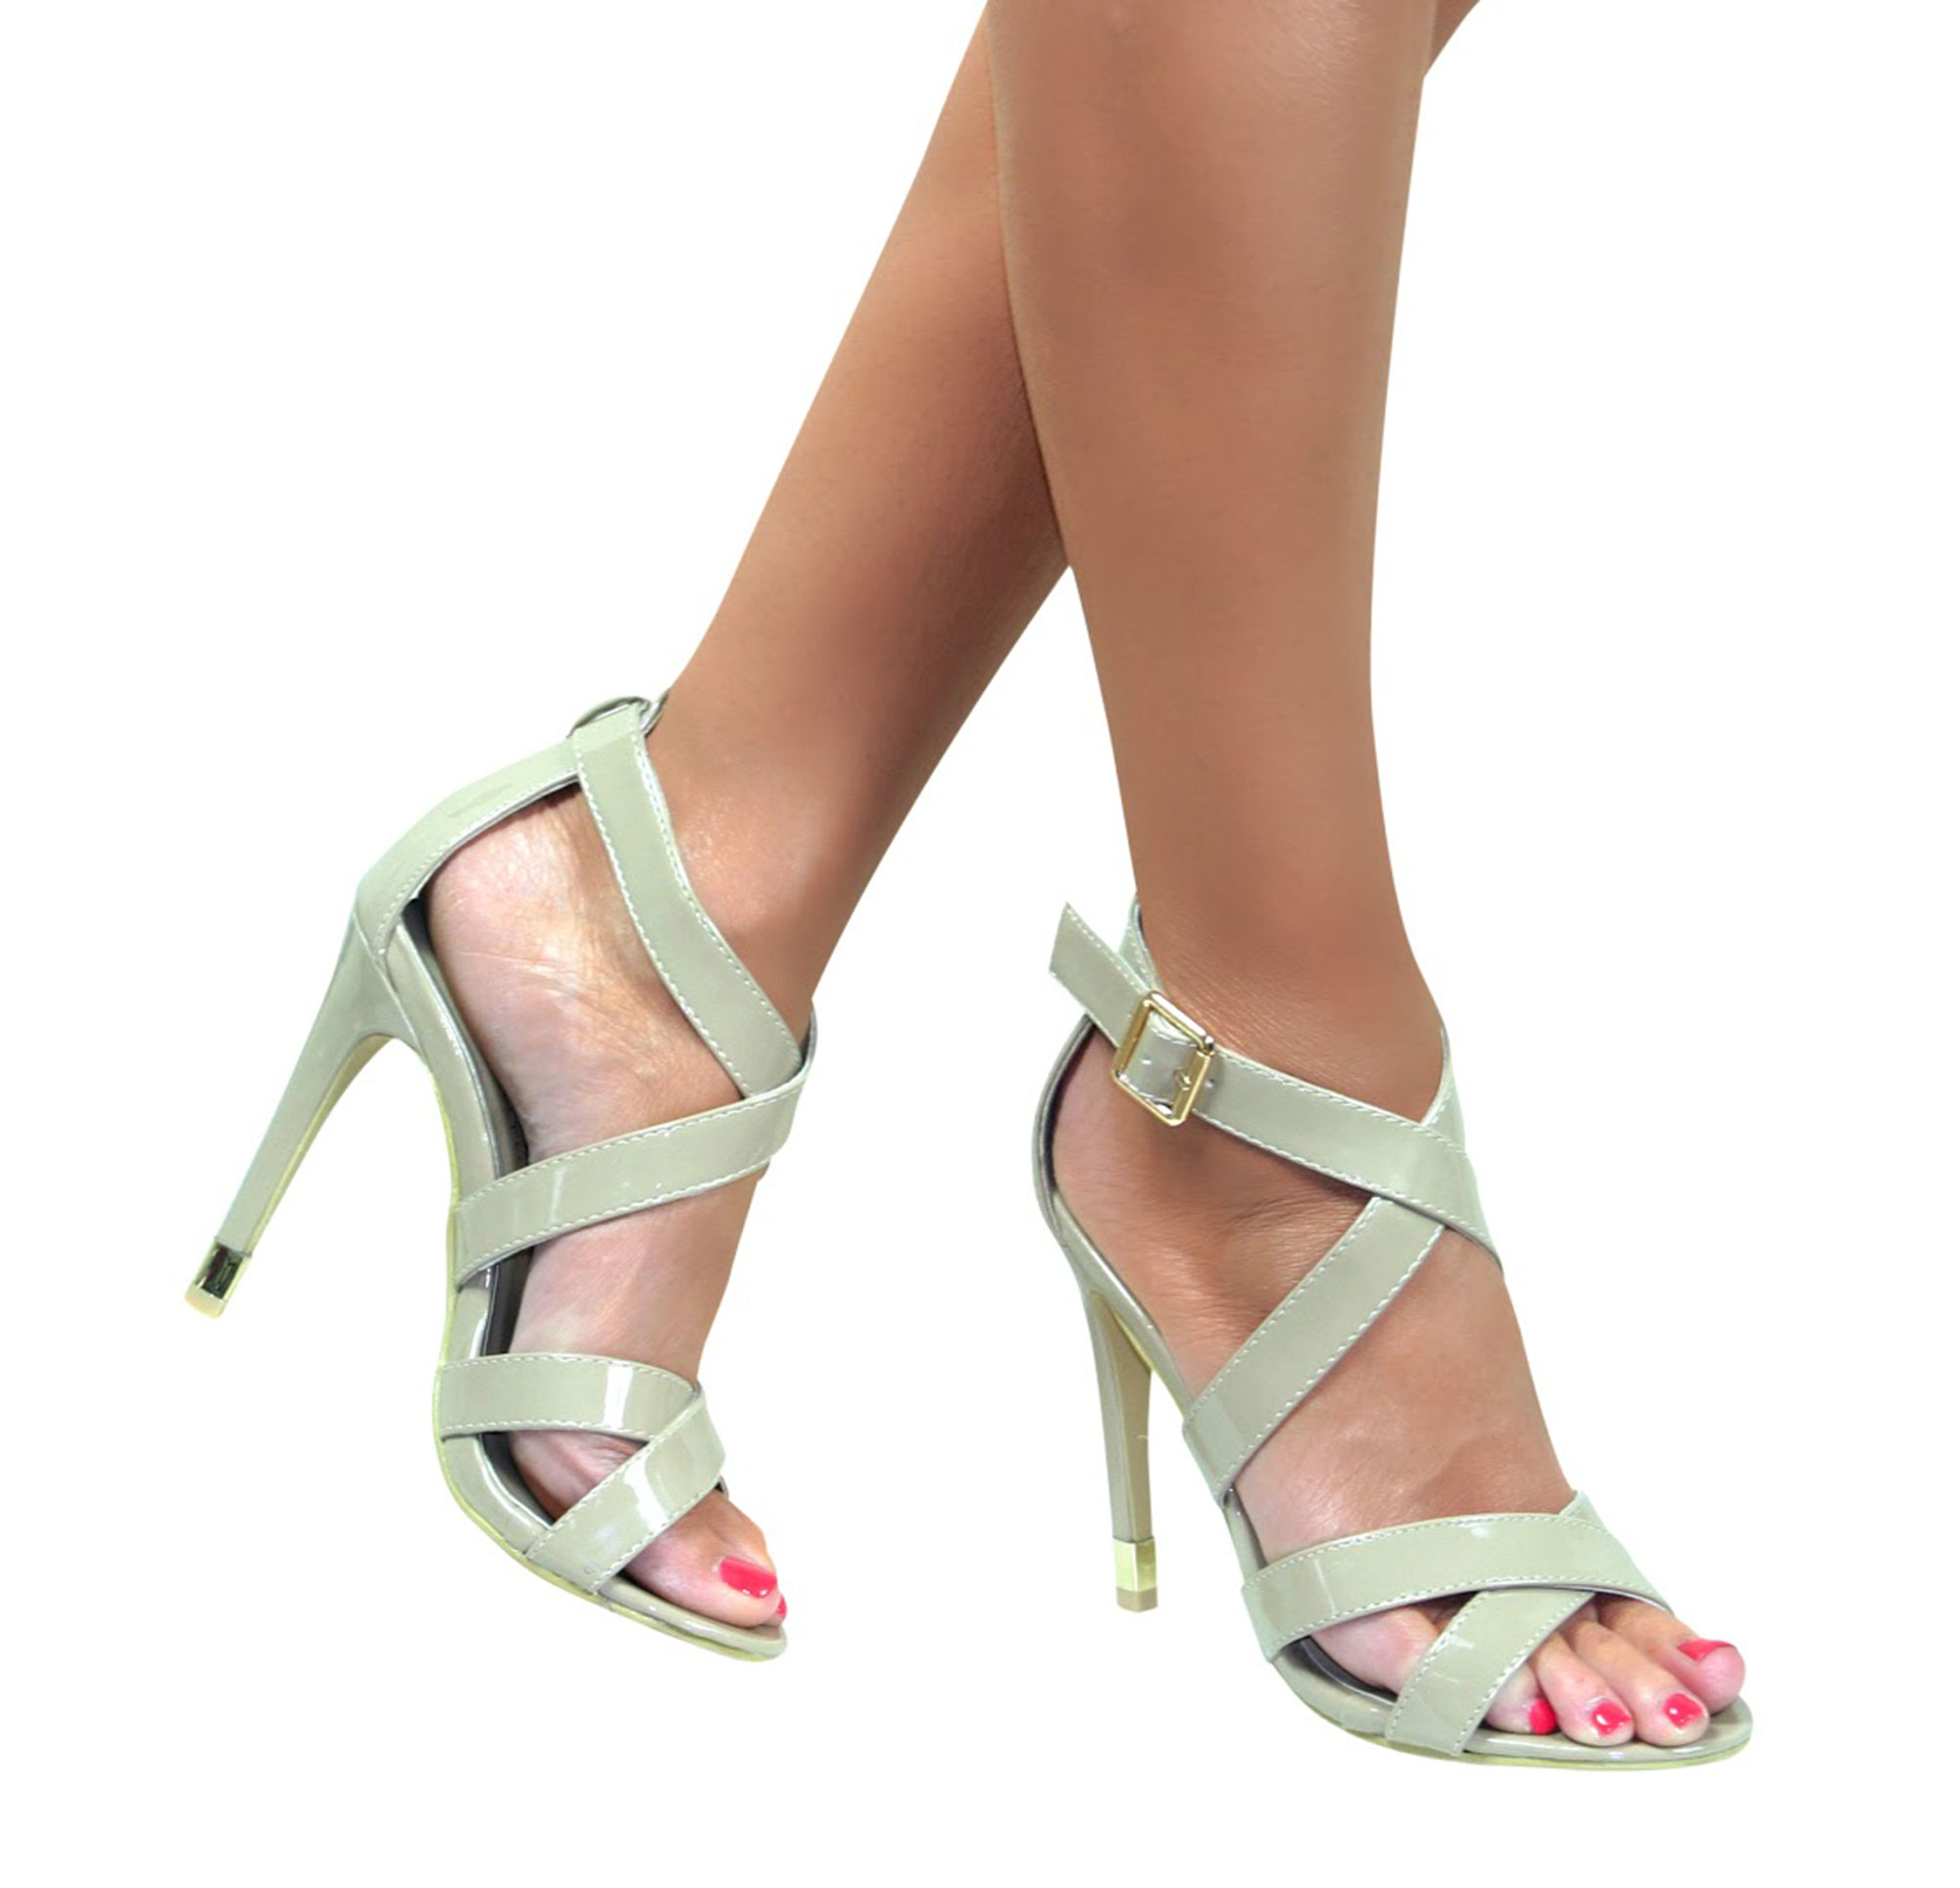 f1cead09d76 STRAPPY SANDALS STILETTO HEEL ANKLE STRAP BUCKLE HIGH HEELS SHOES ...